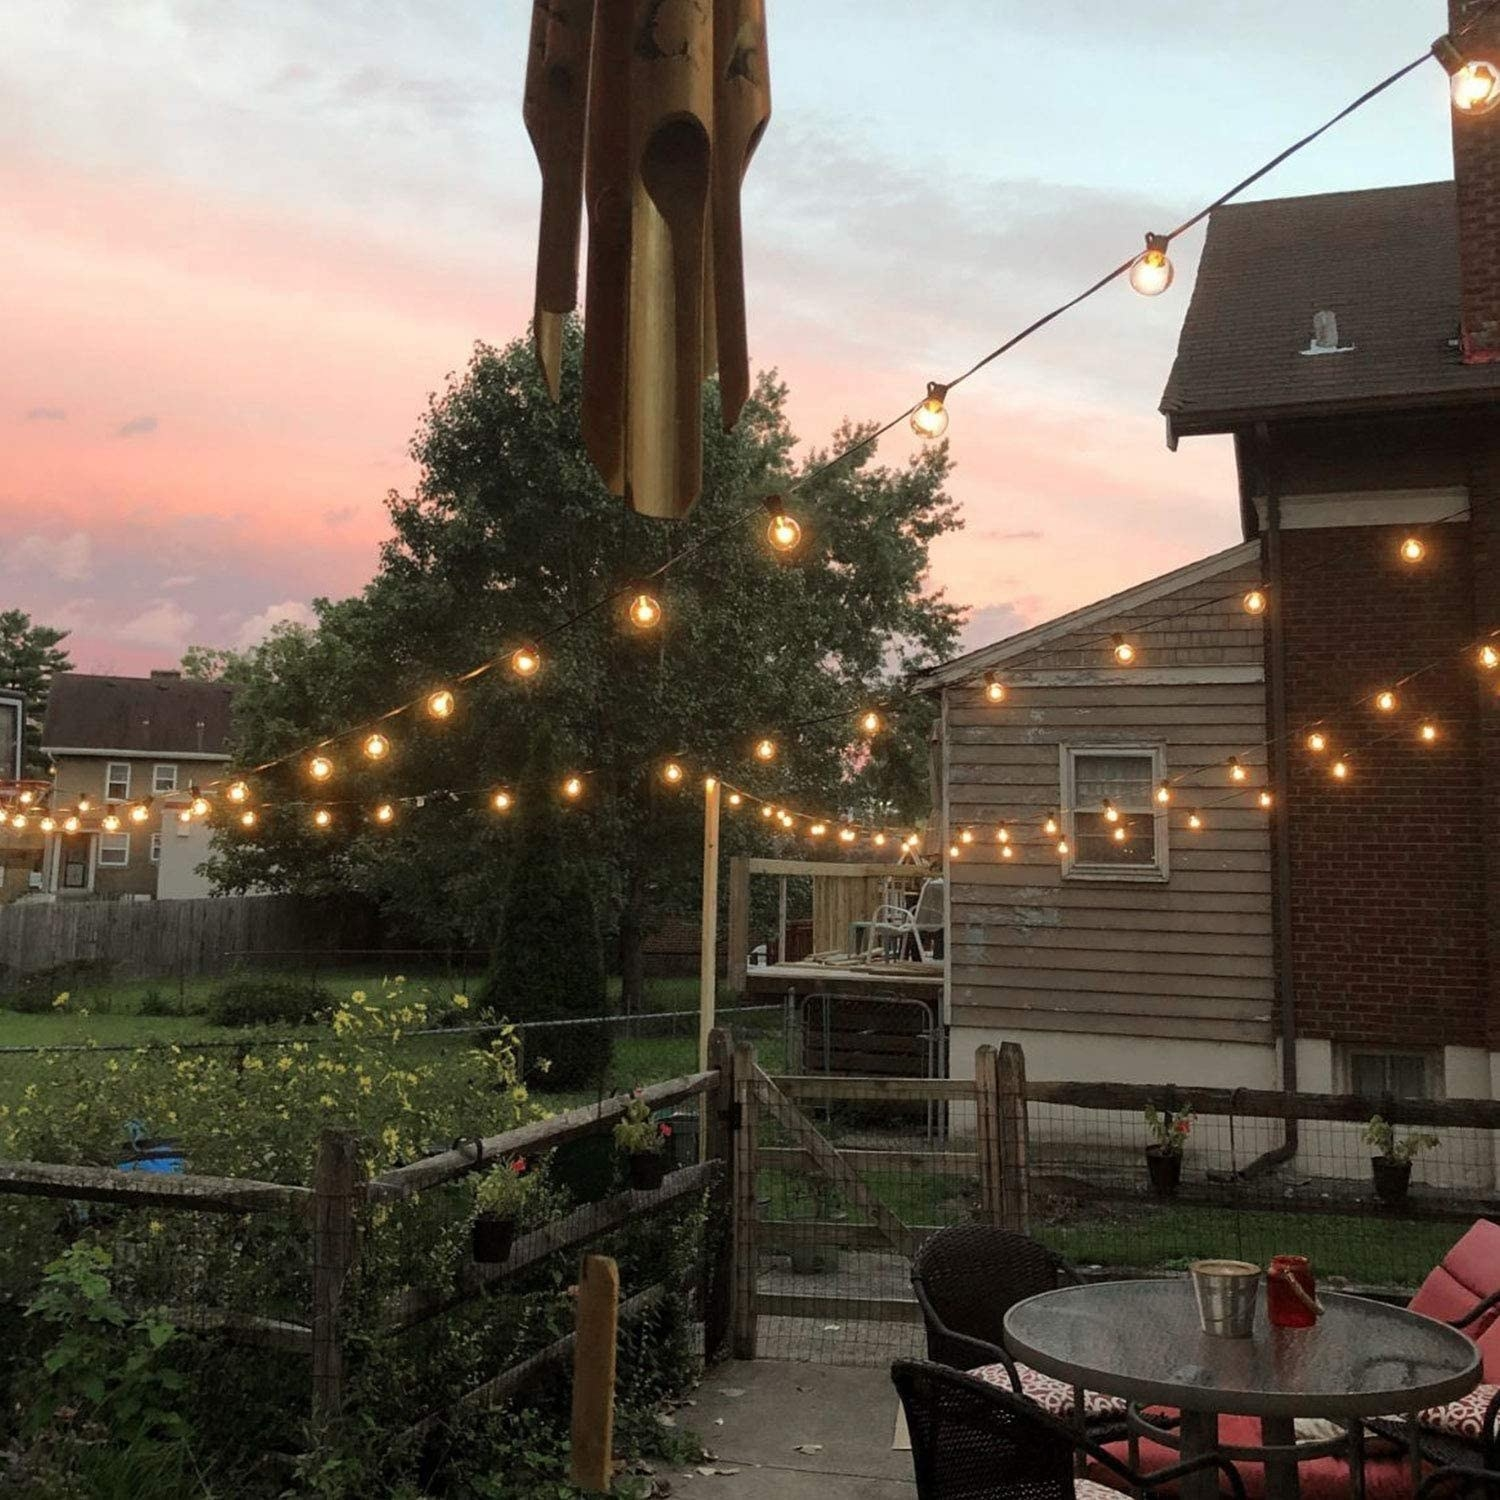 The stringed lights hanging in a backyard